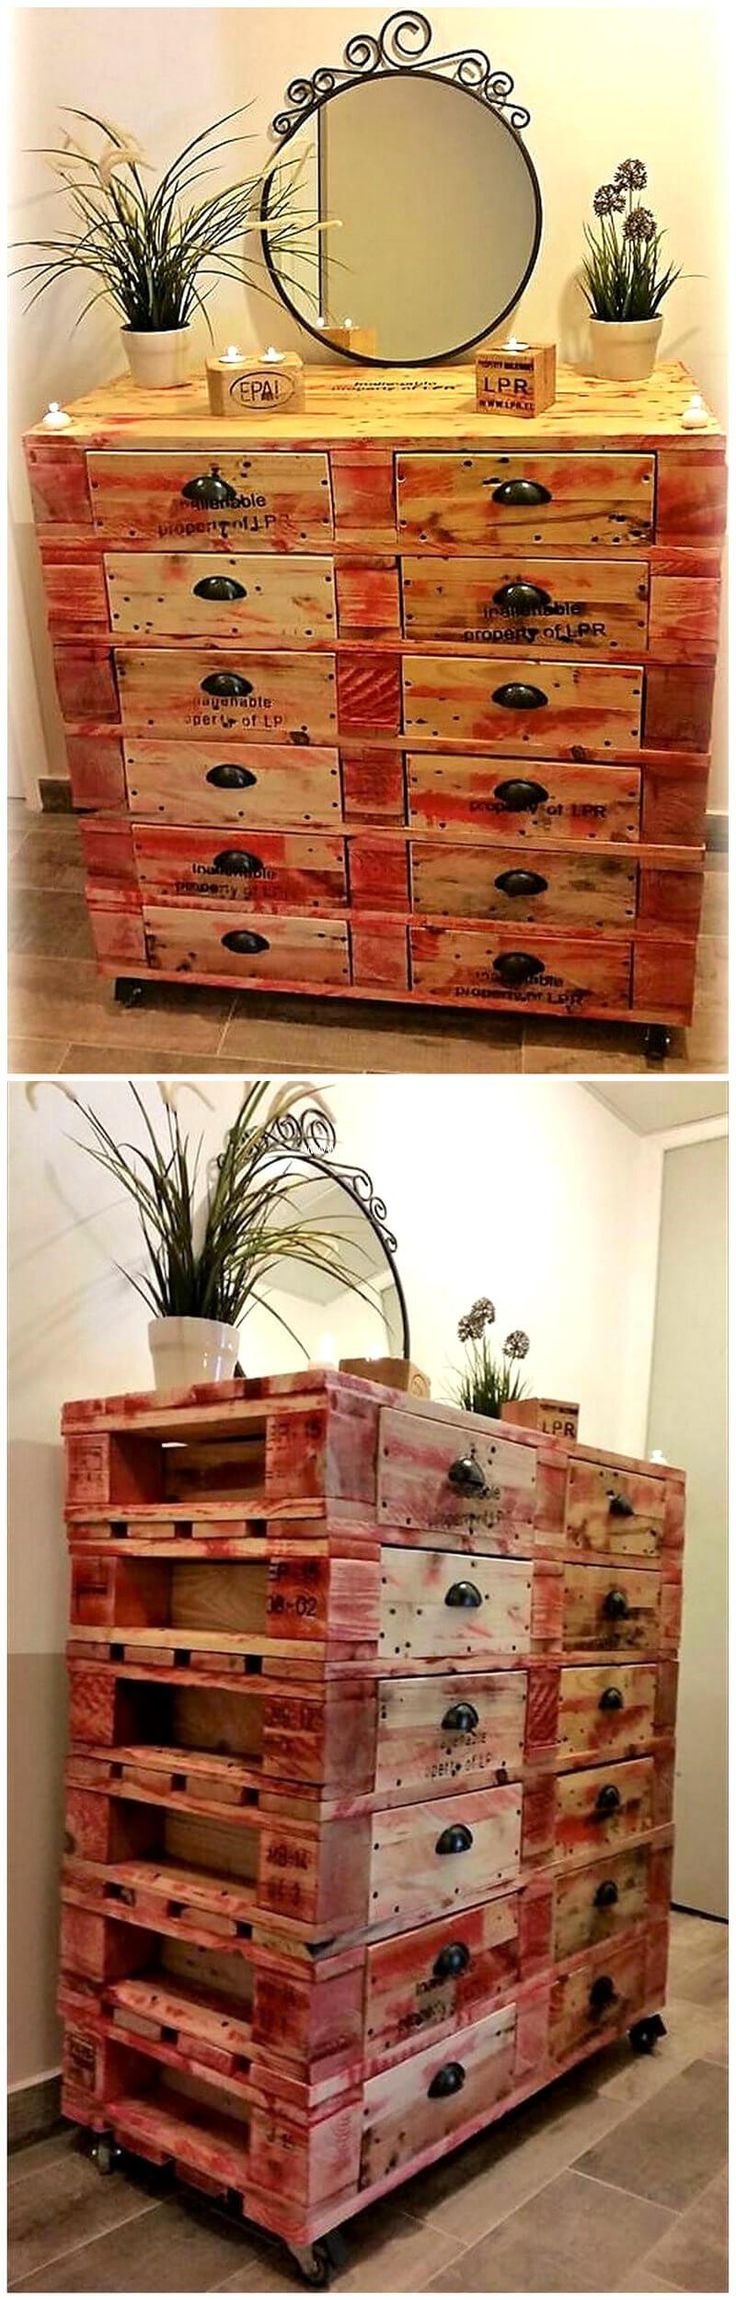 Here we come with reused wood pallet